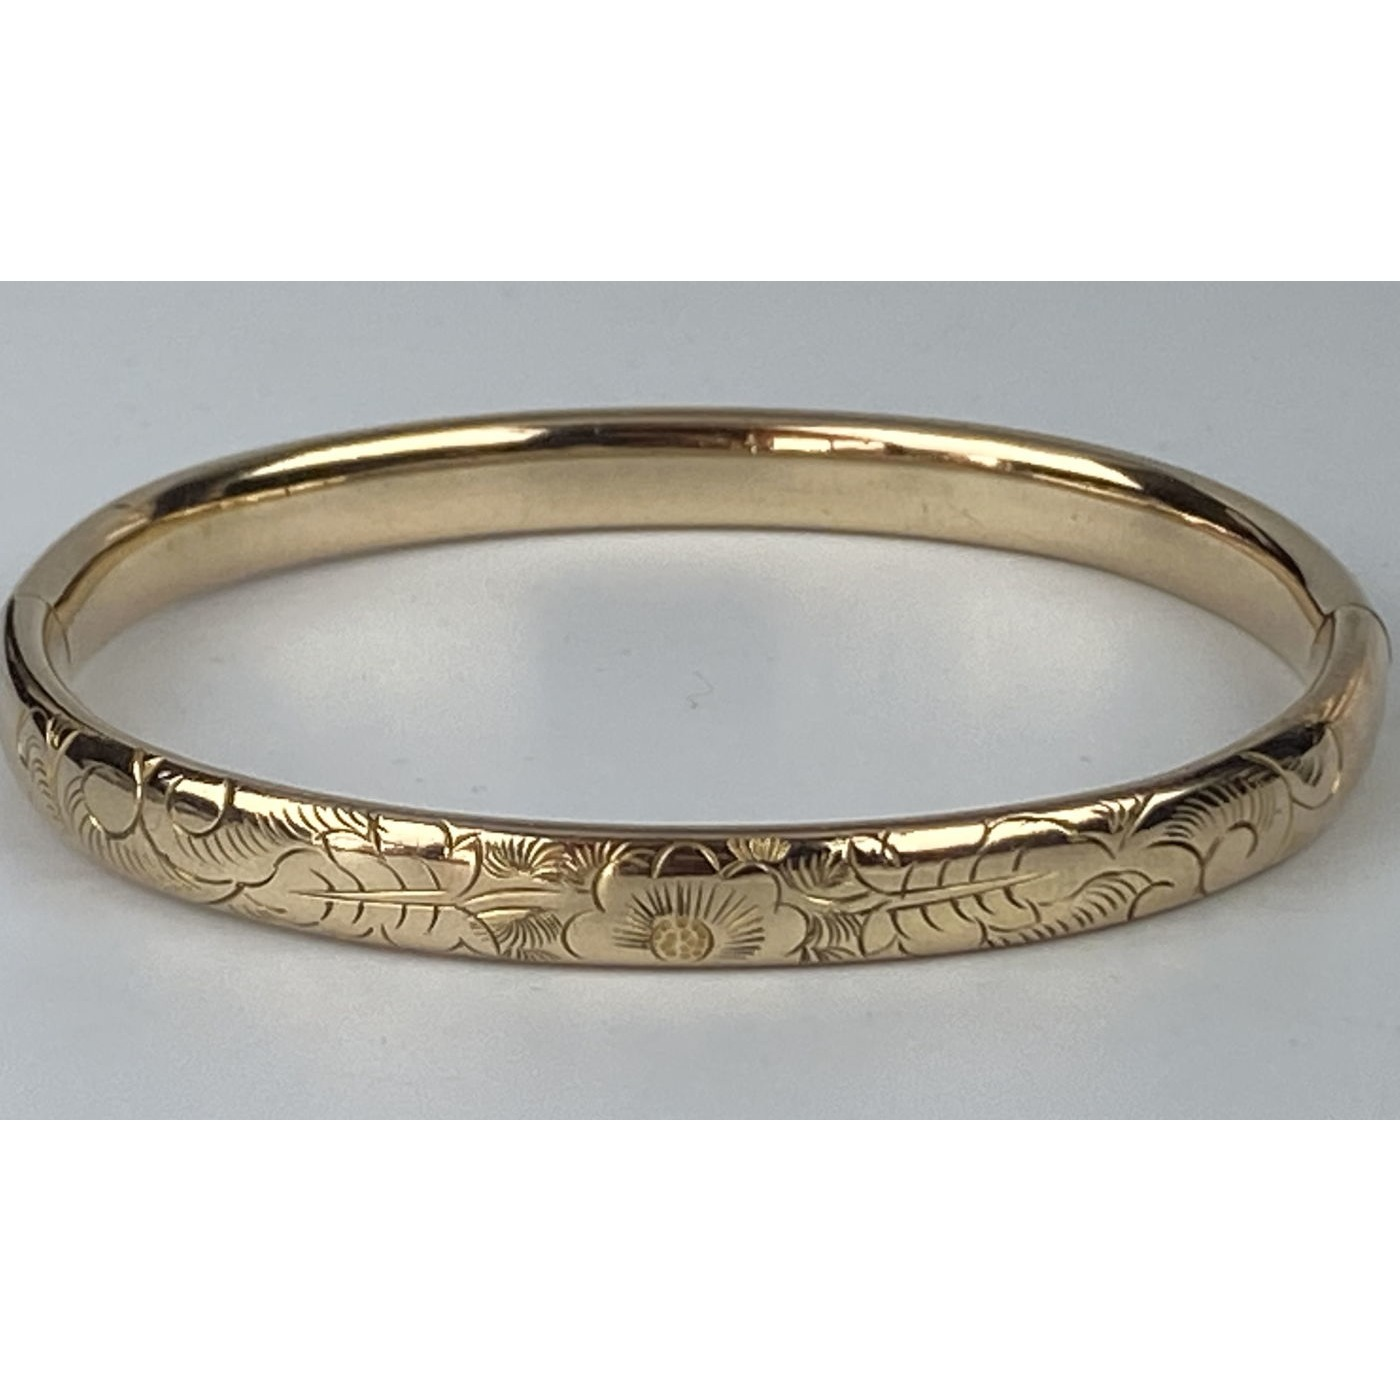 Super Sweet Smaller-Than-Average Engagement Bangle